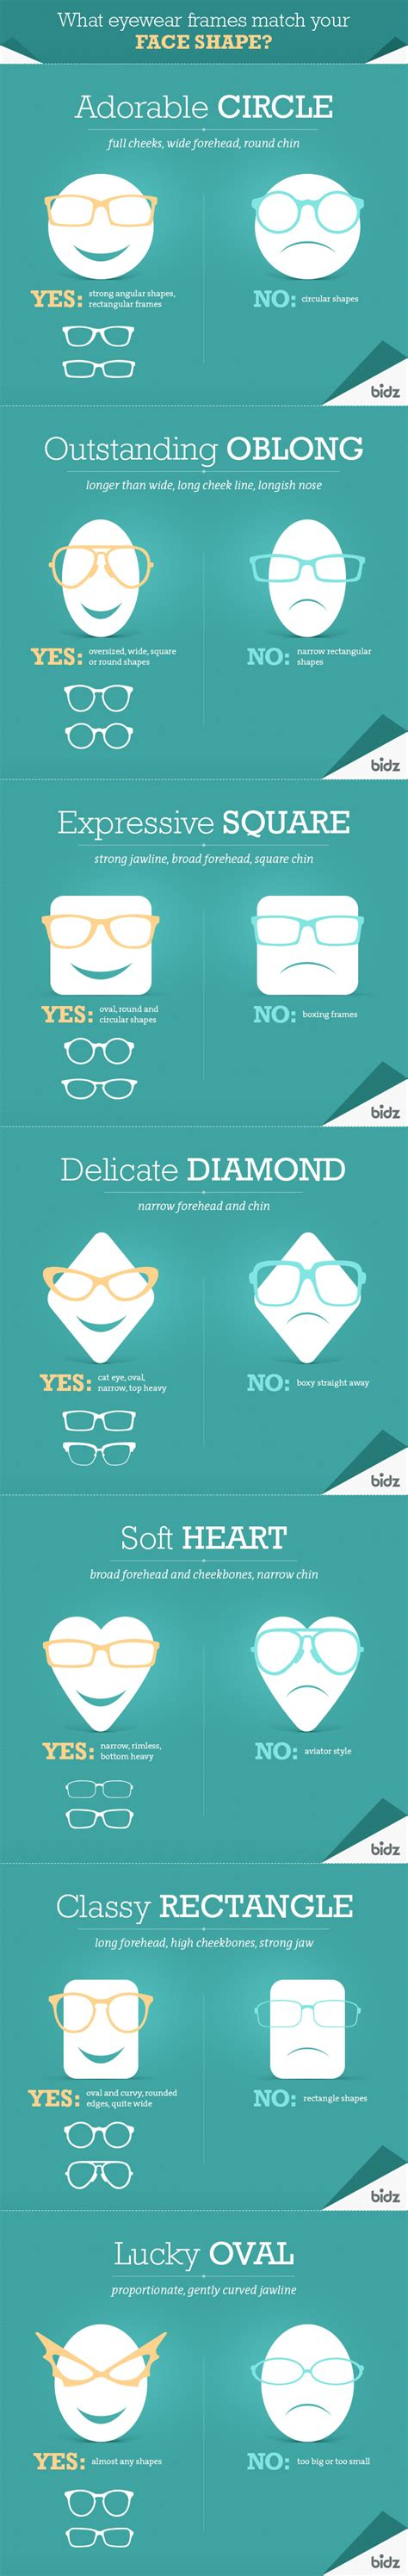 eyeglass frames that match your face shape and coloring eyeglass frames that match your face shape and coloring